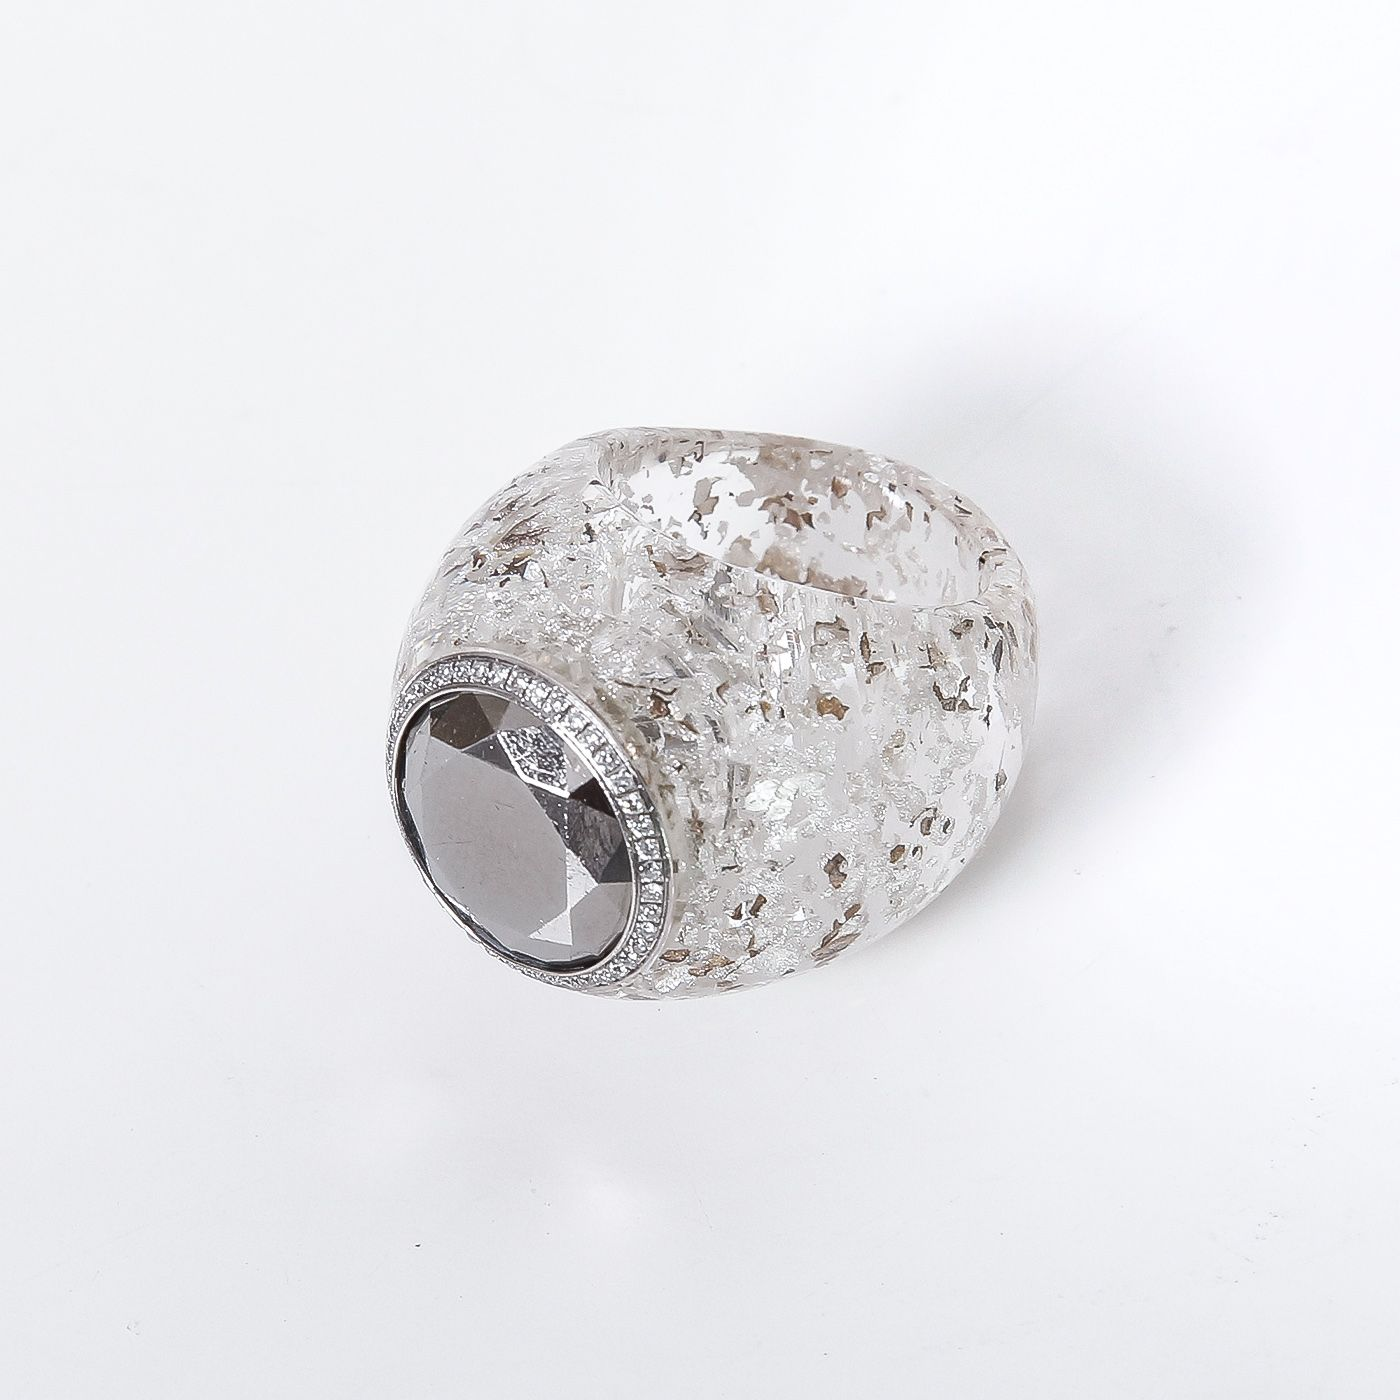 Chopard 18K White Gold With Diamonds in White Resin Ring Small